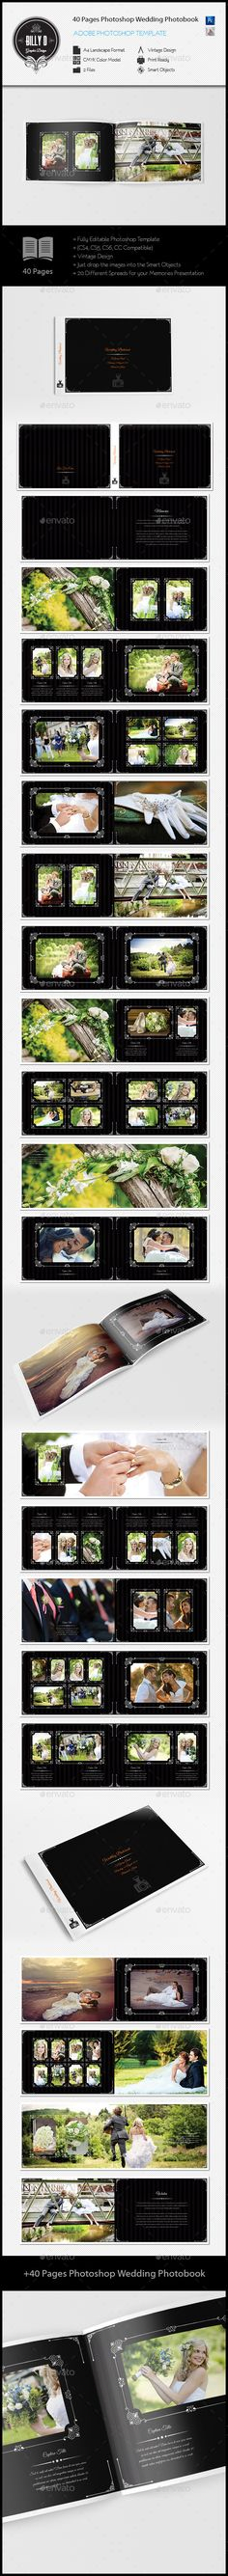 40 Pages Photoshop Wedding Photobook Template